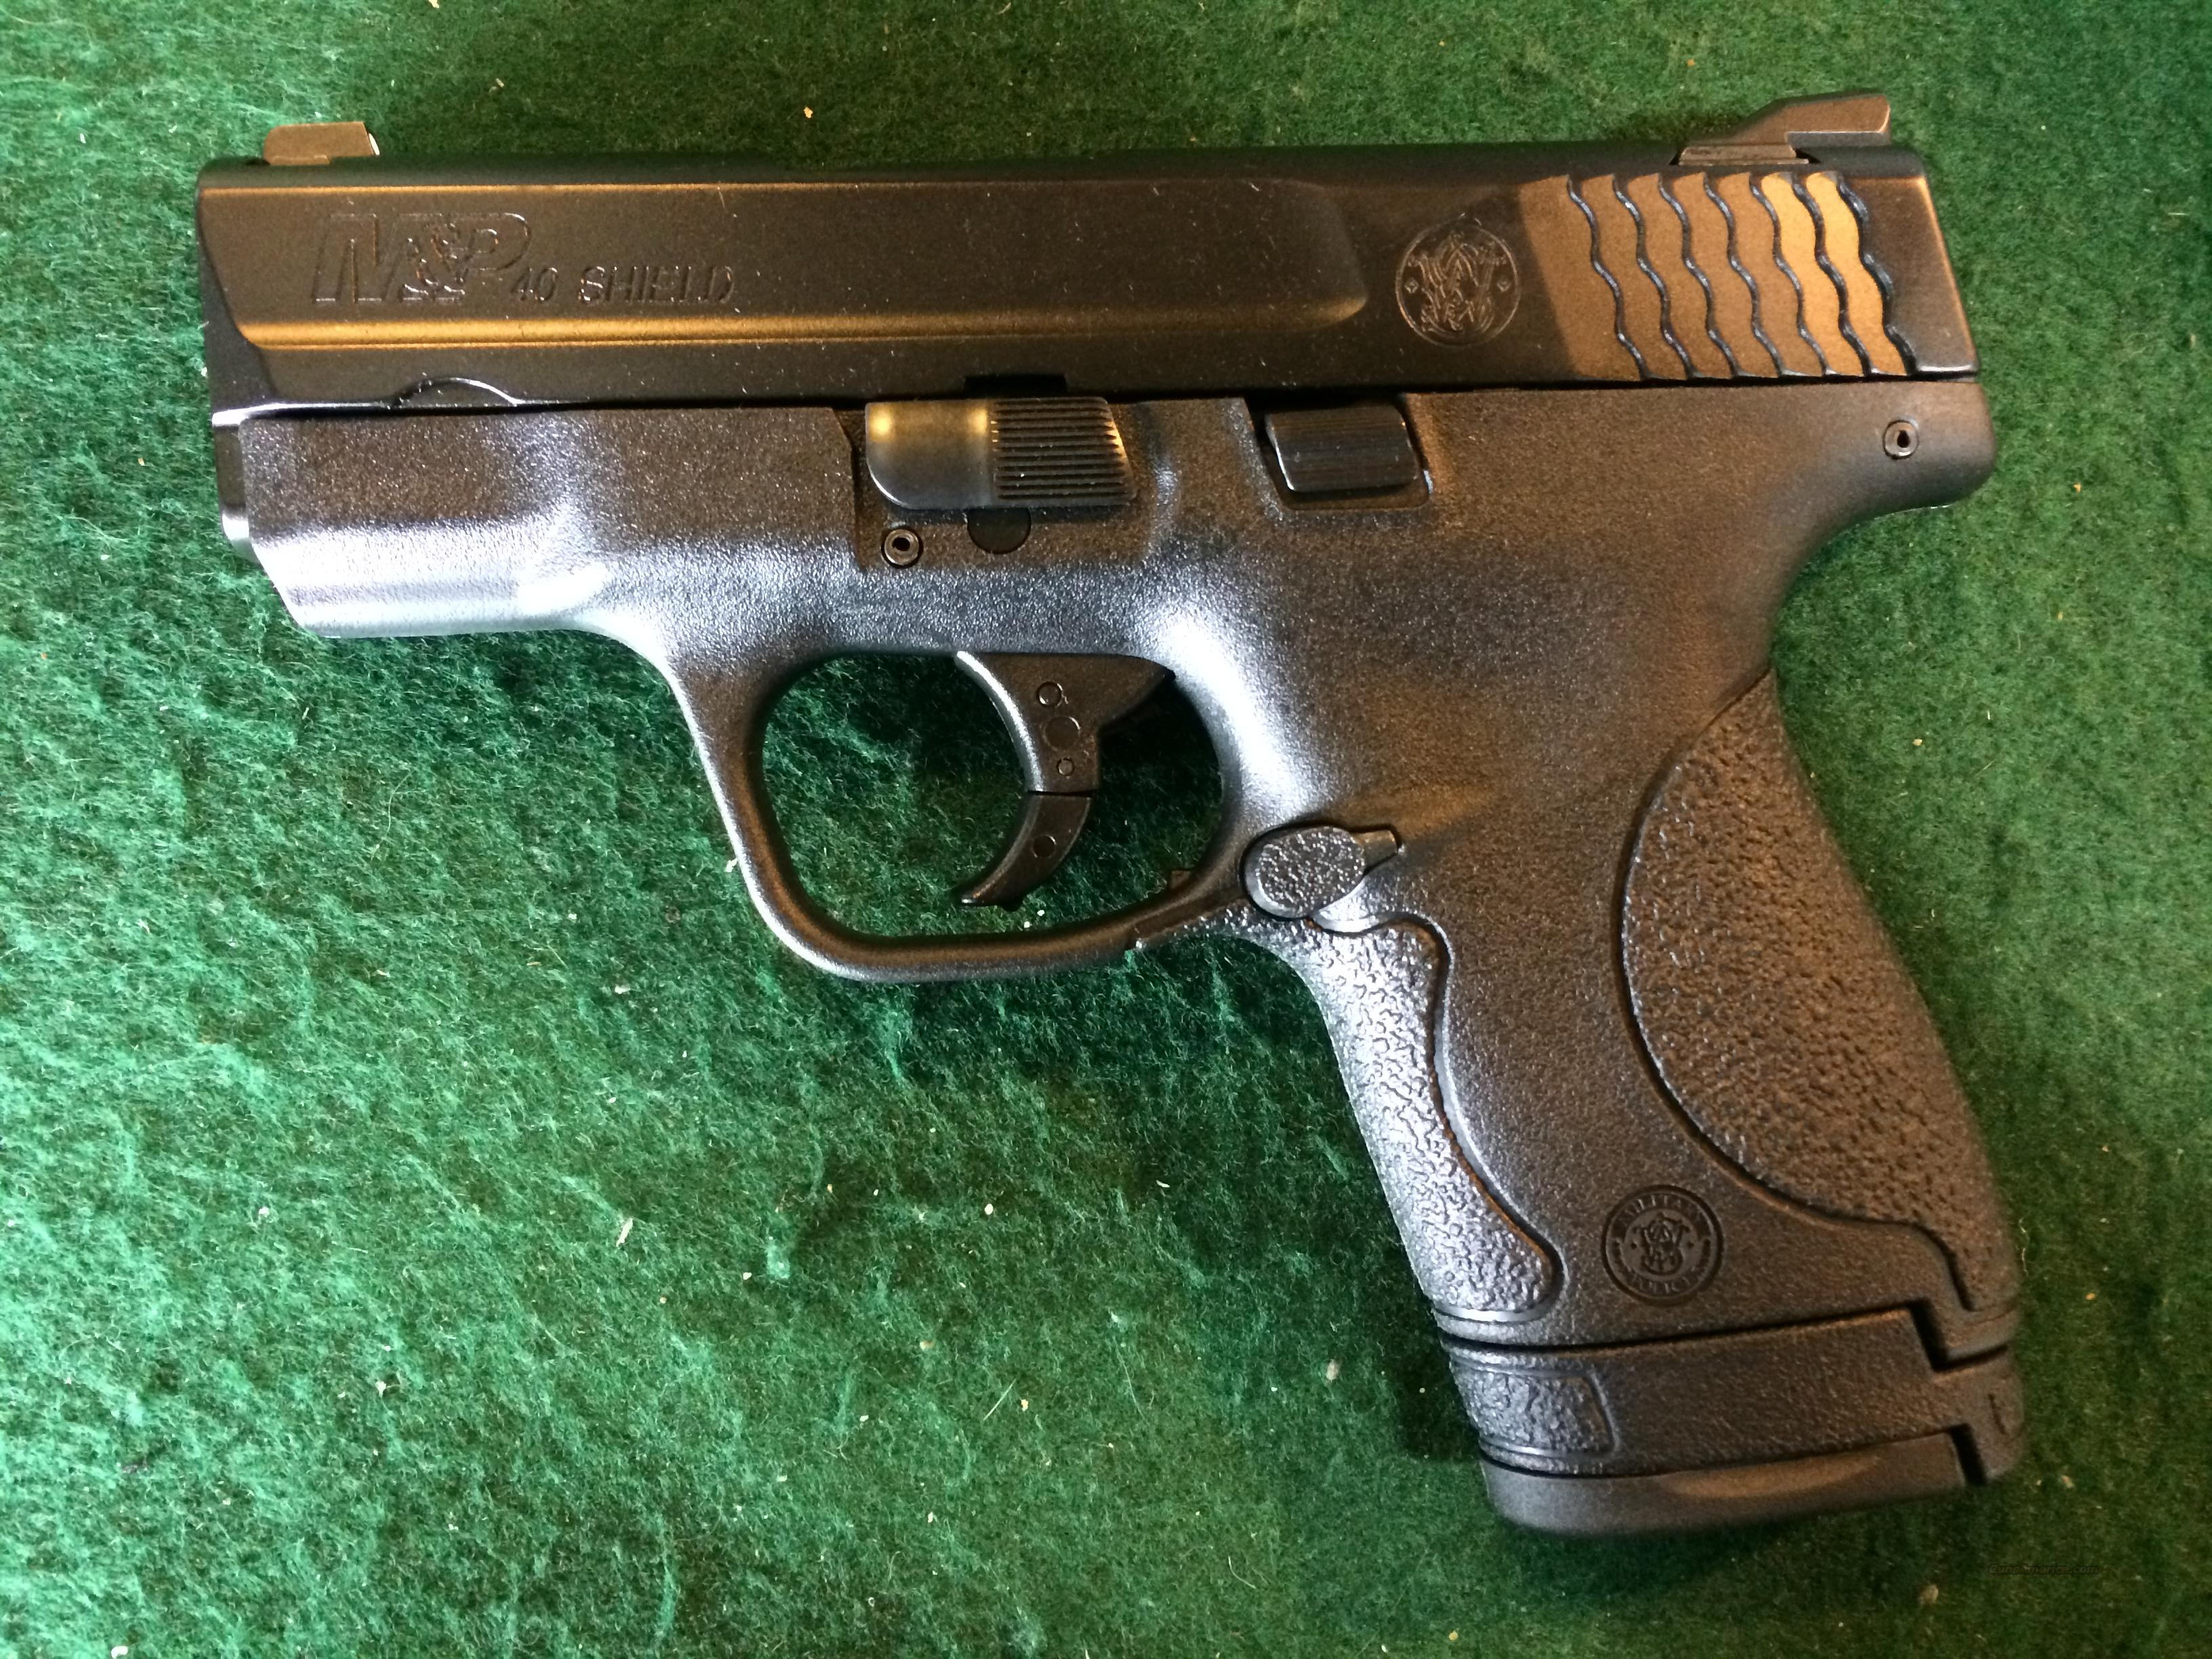 S&W M&P 40 Shield 40S&W with No Thumb Safety  Guns > Pistols > Smith & Wesson Pistols - Autos > Polymer Frame